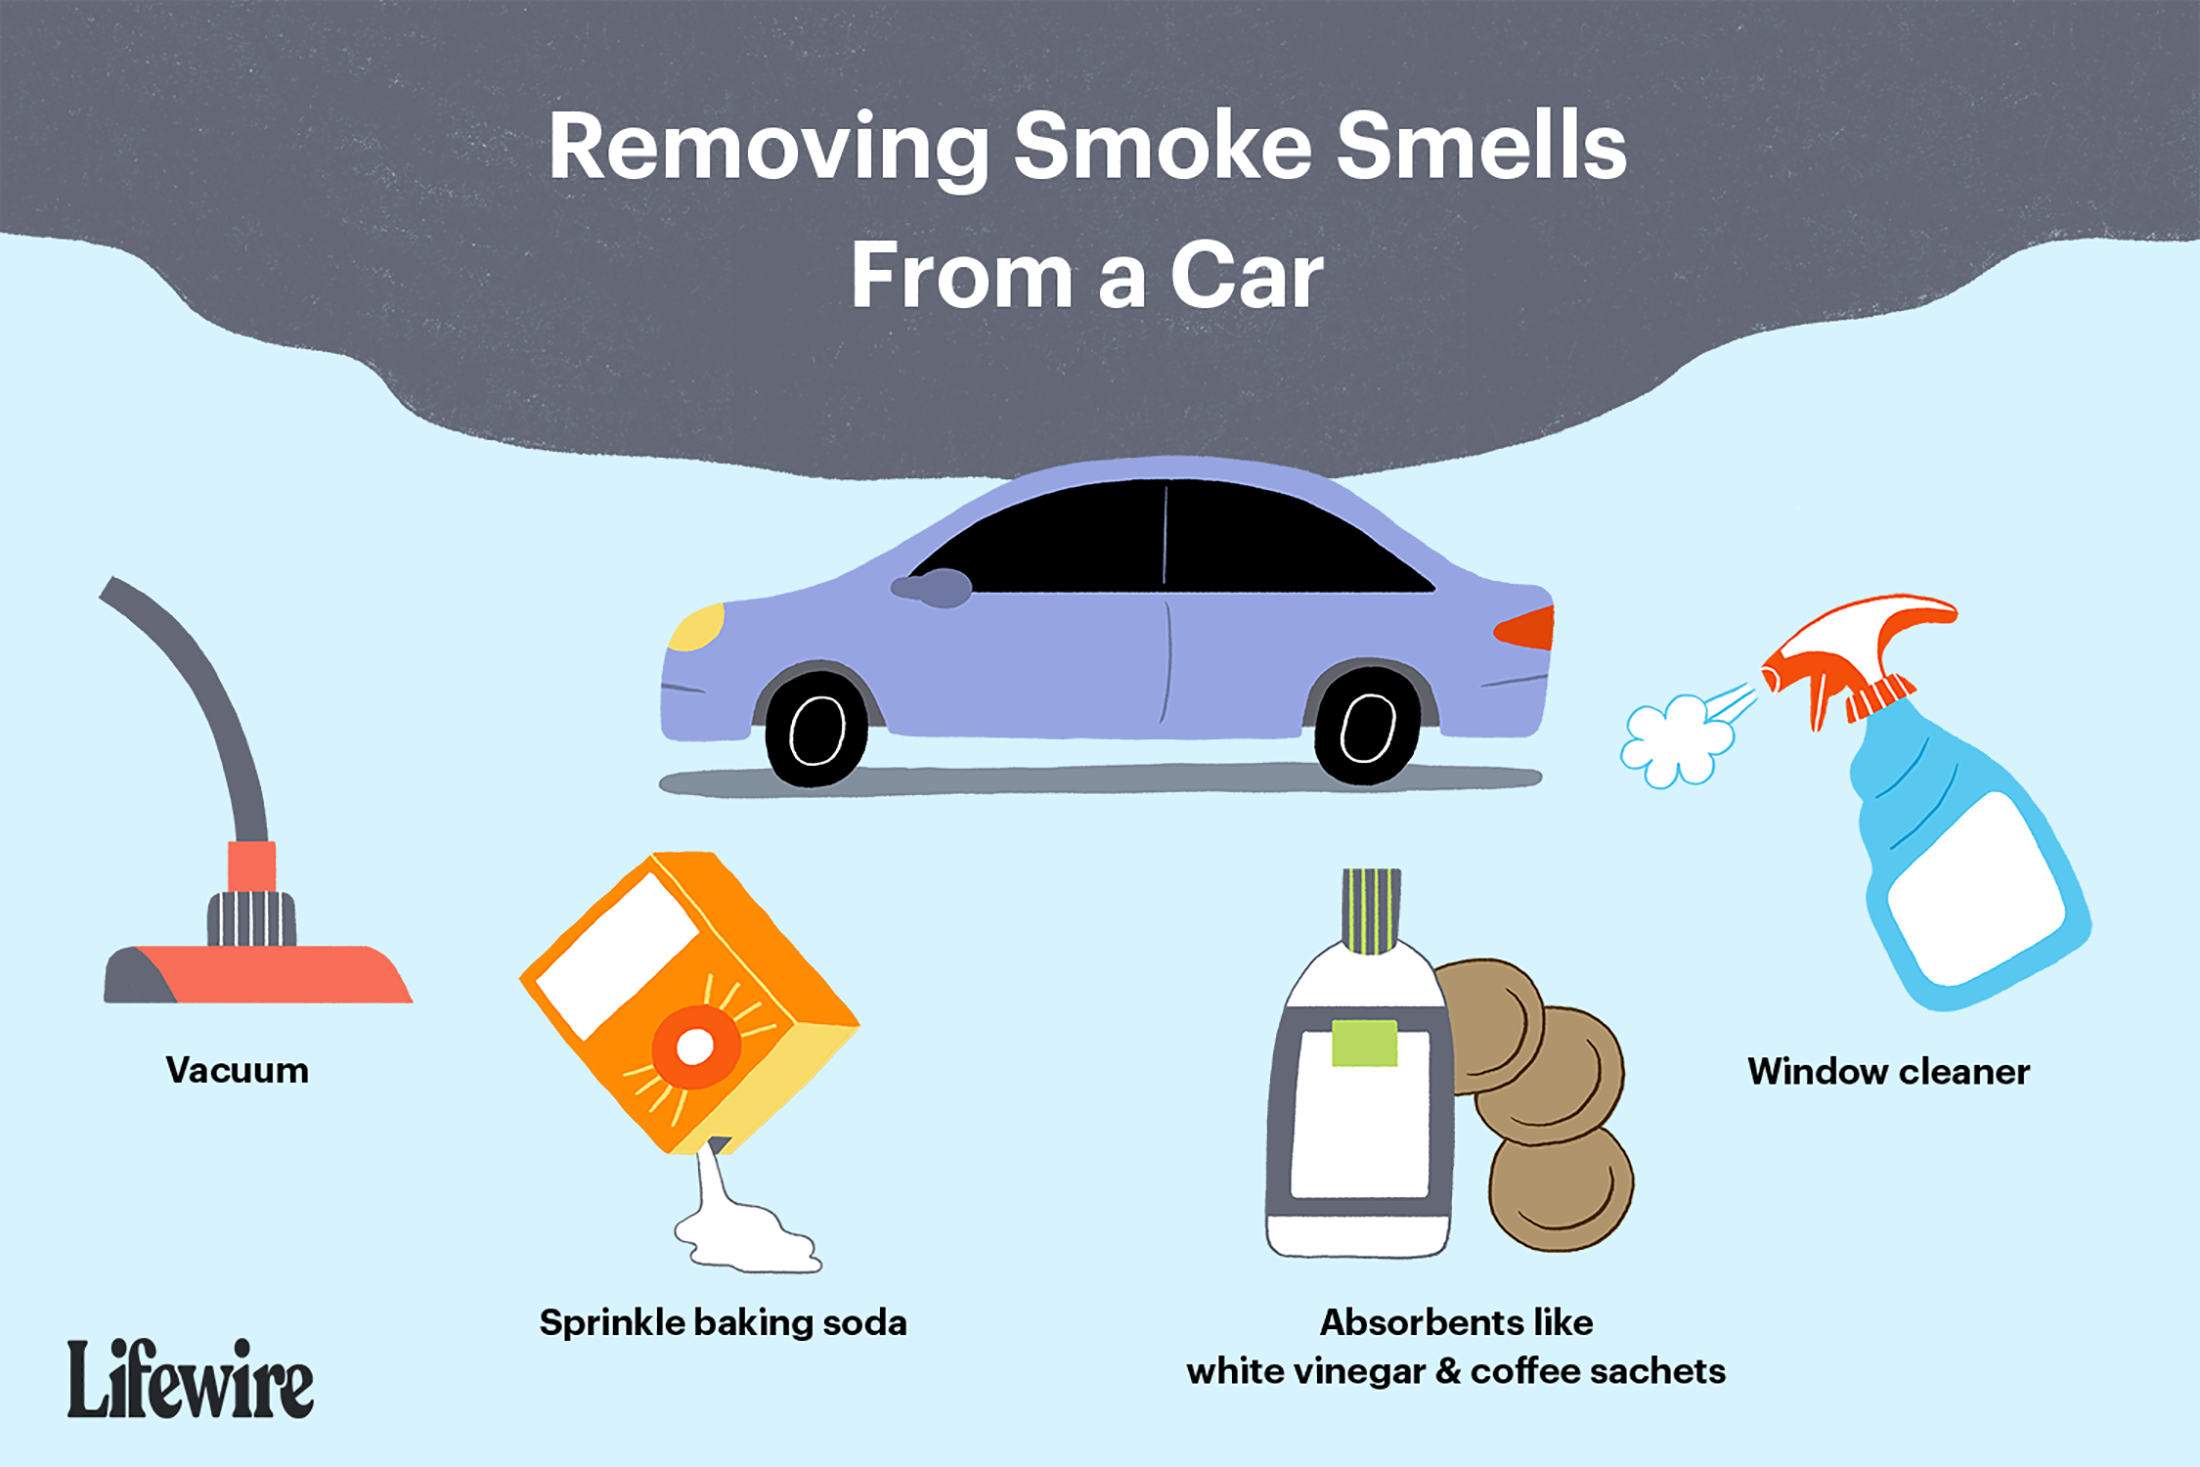 An illustration of the tools needed to remove smoke smells from a car.